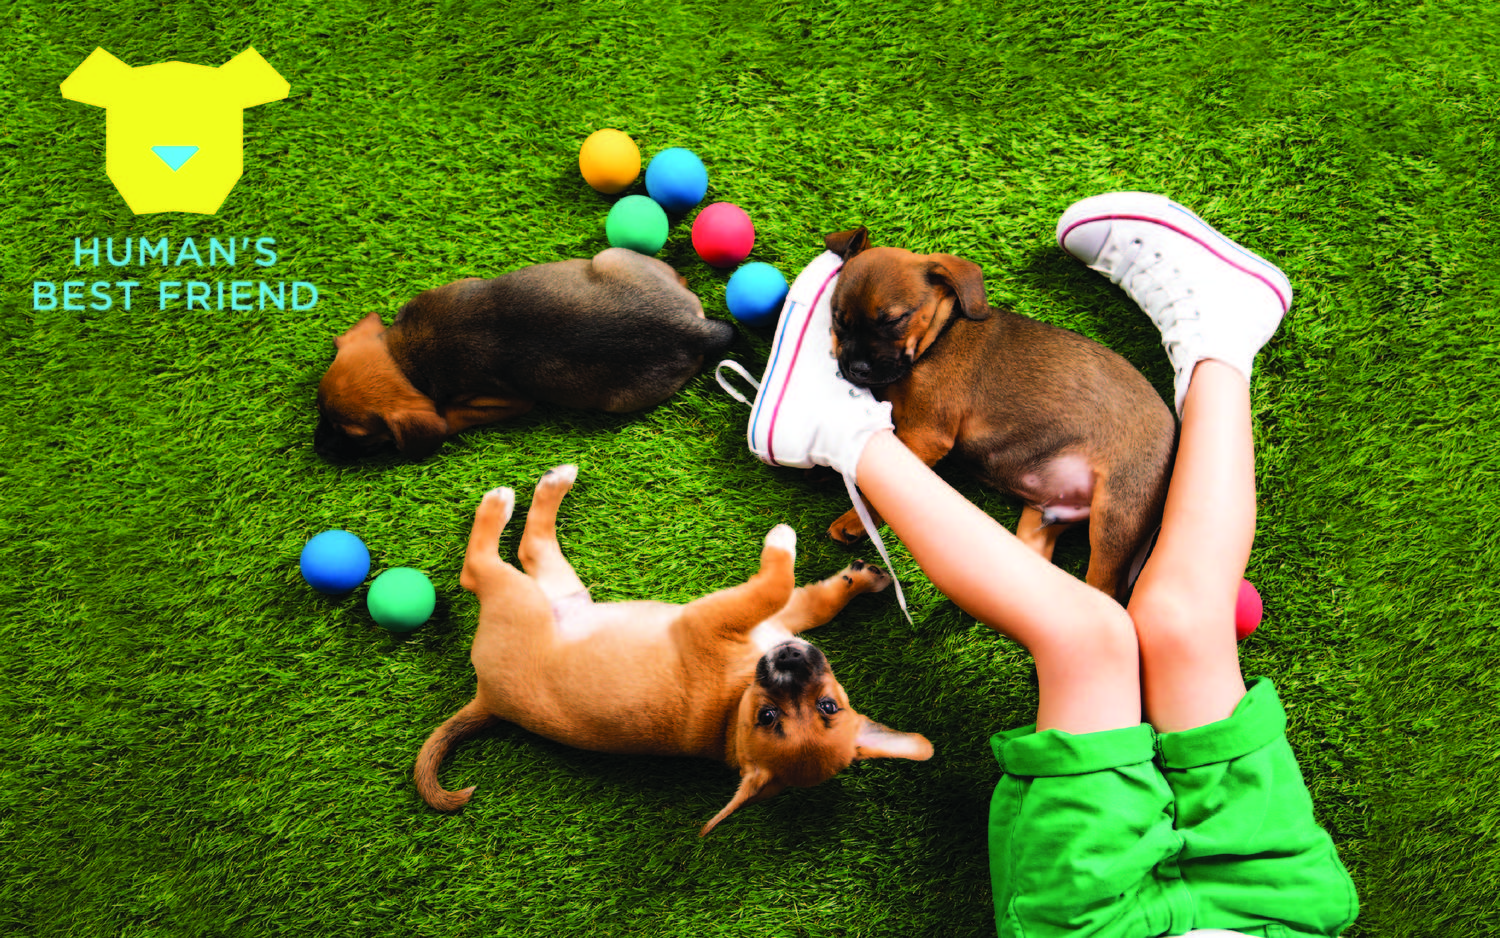 Human's Best Friend - An Immersive Pop-Up for Dogs and Dog Lovers